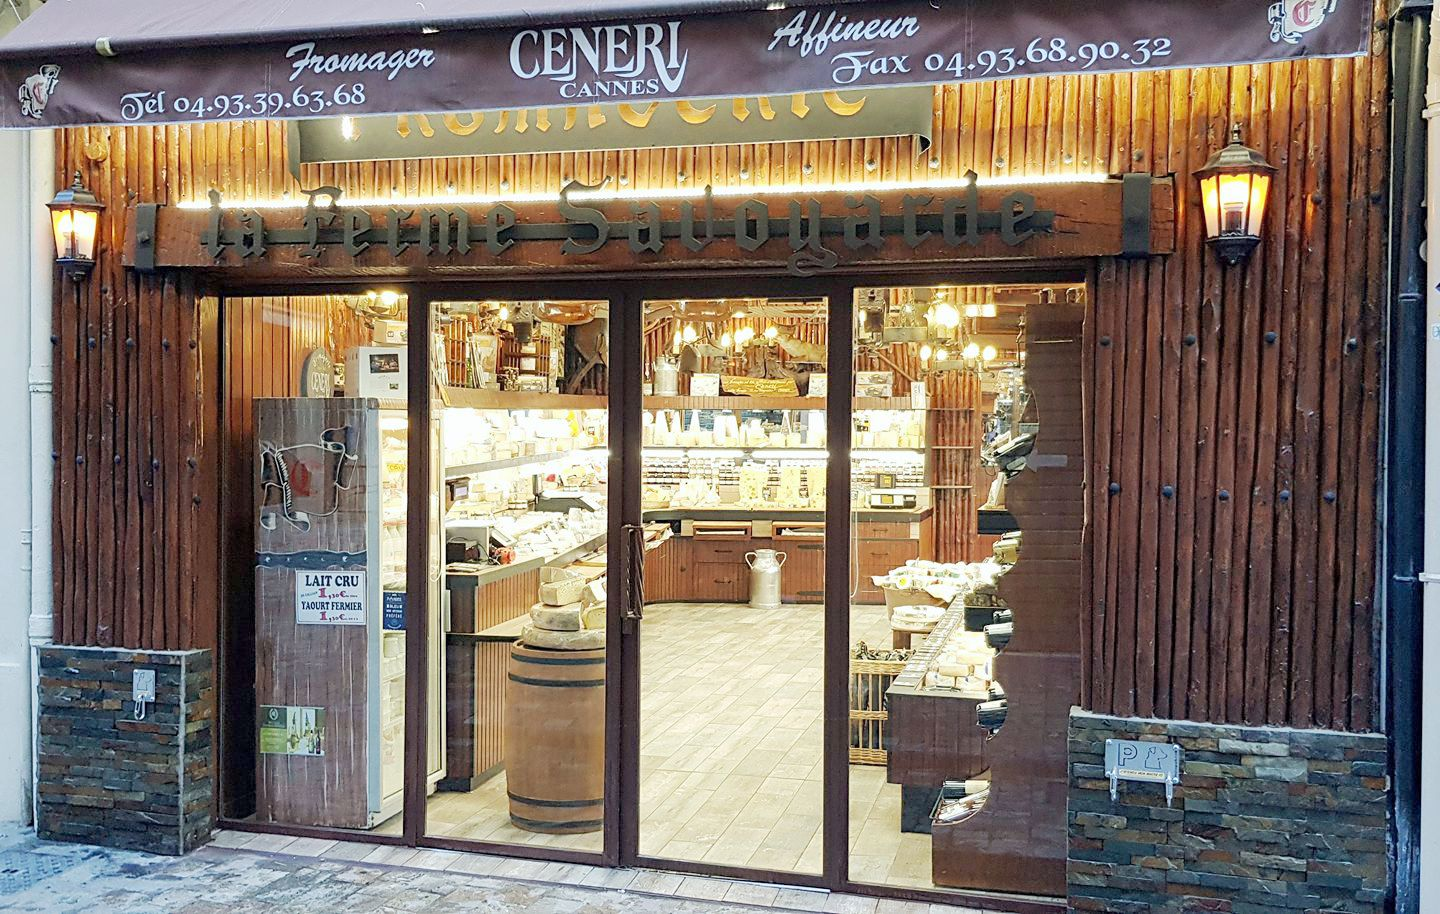 CENERI - fromagerie - cannes